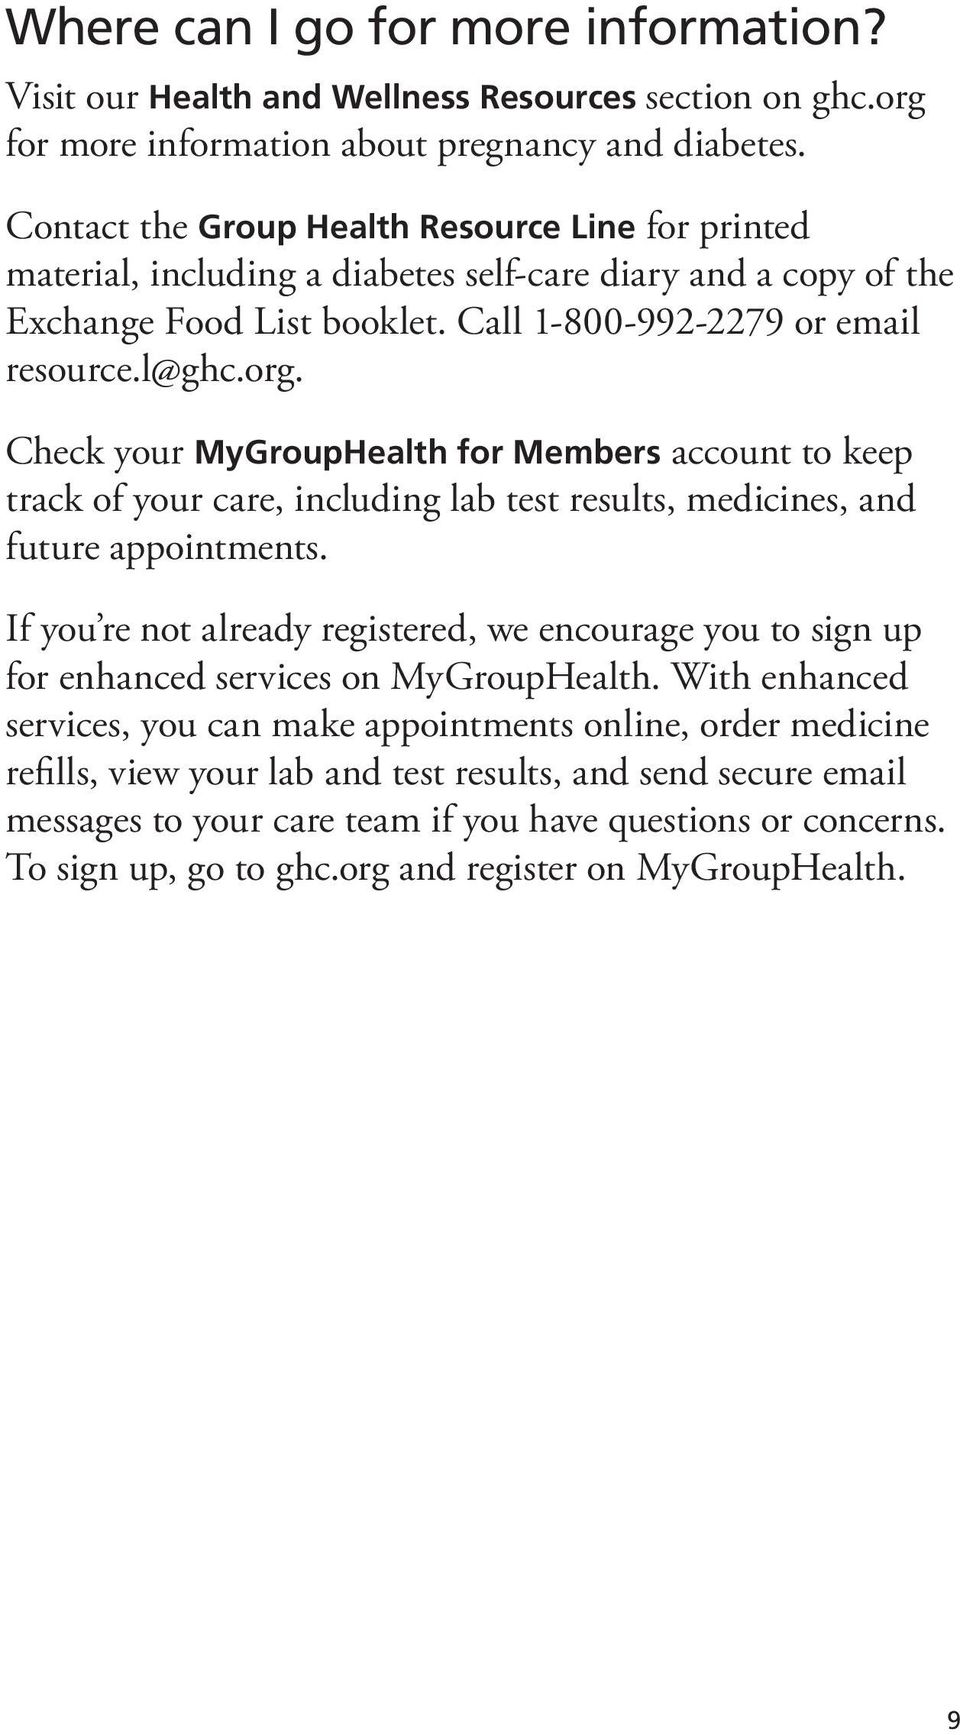 Check your MyGroupHealth for Members account to keep track of your care, including lab test results, medicines, and future appointments.